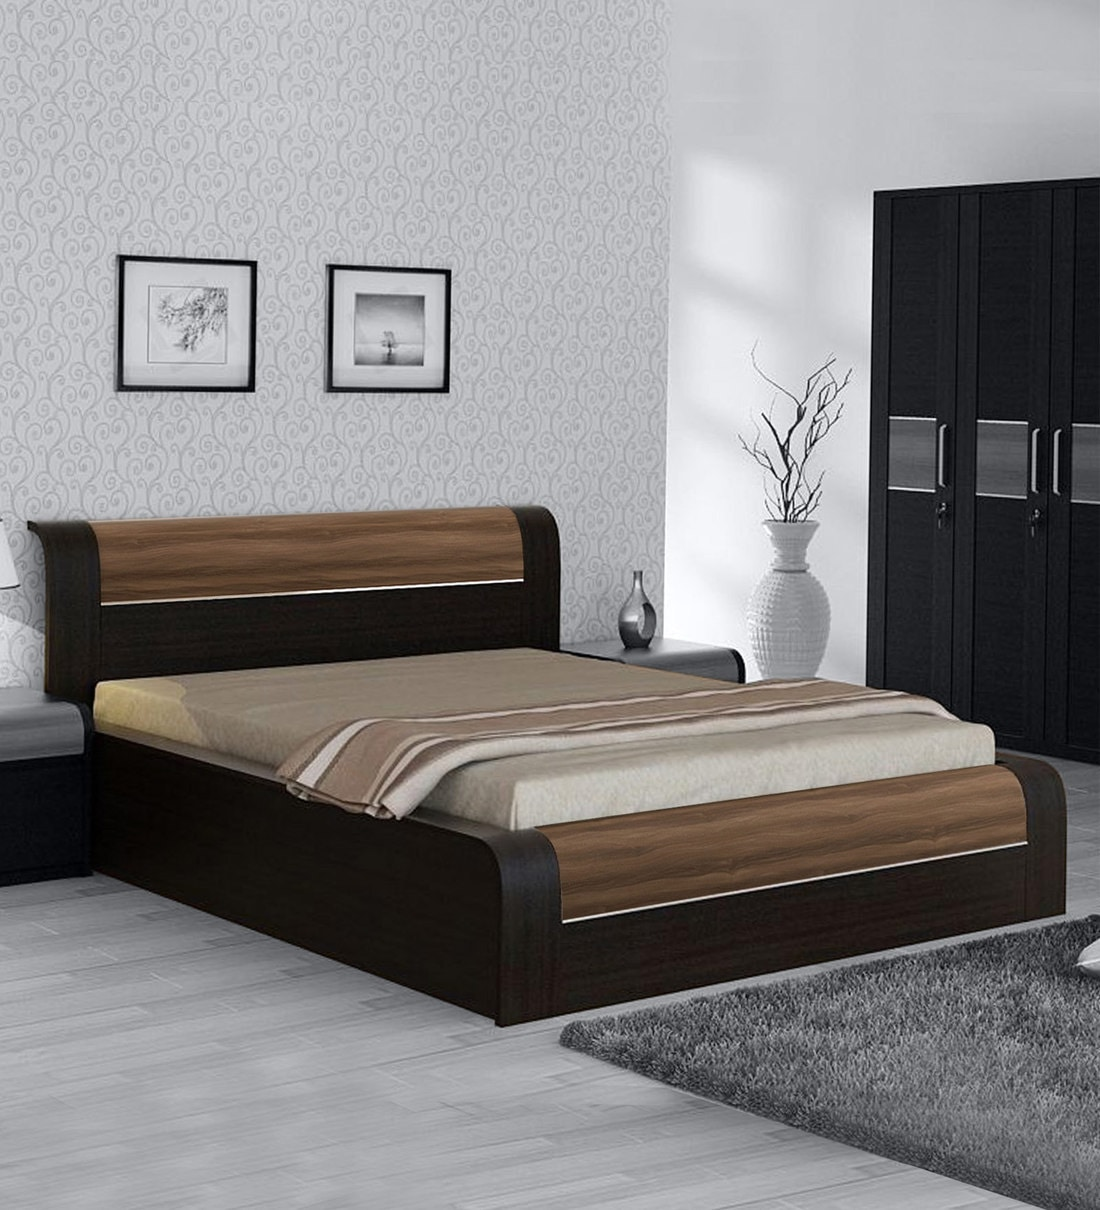 Picture of: Buy King Size Bed With Storage In Natural Wenge Woodpore Finish By Spacewood Online Contemporary King Size Beds Beds Furniture Pepperfry Product